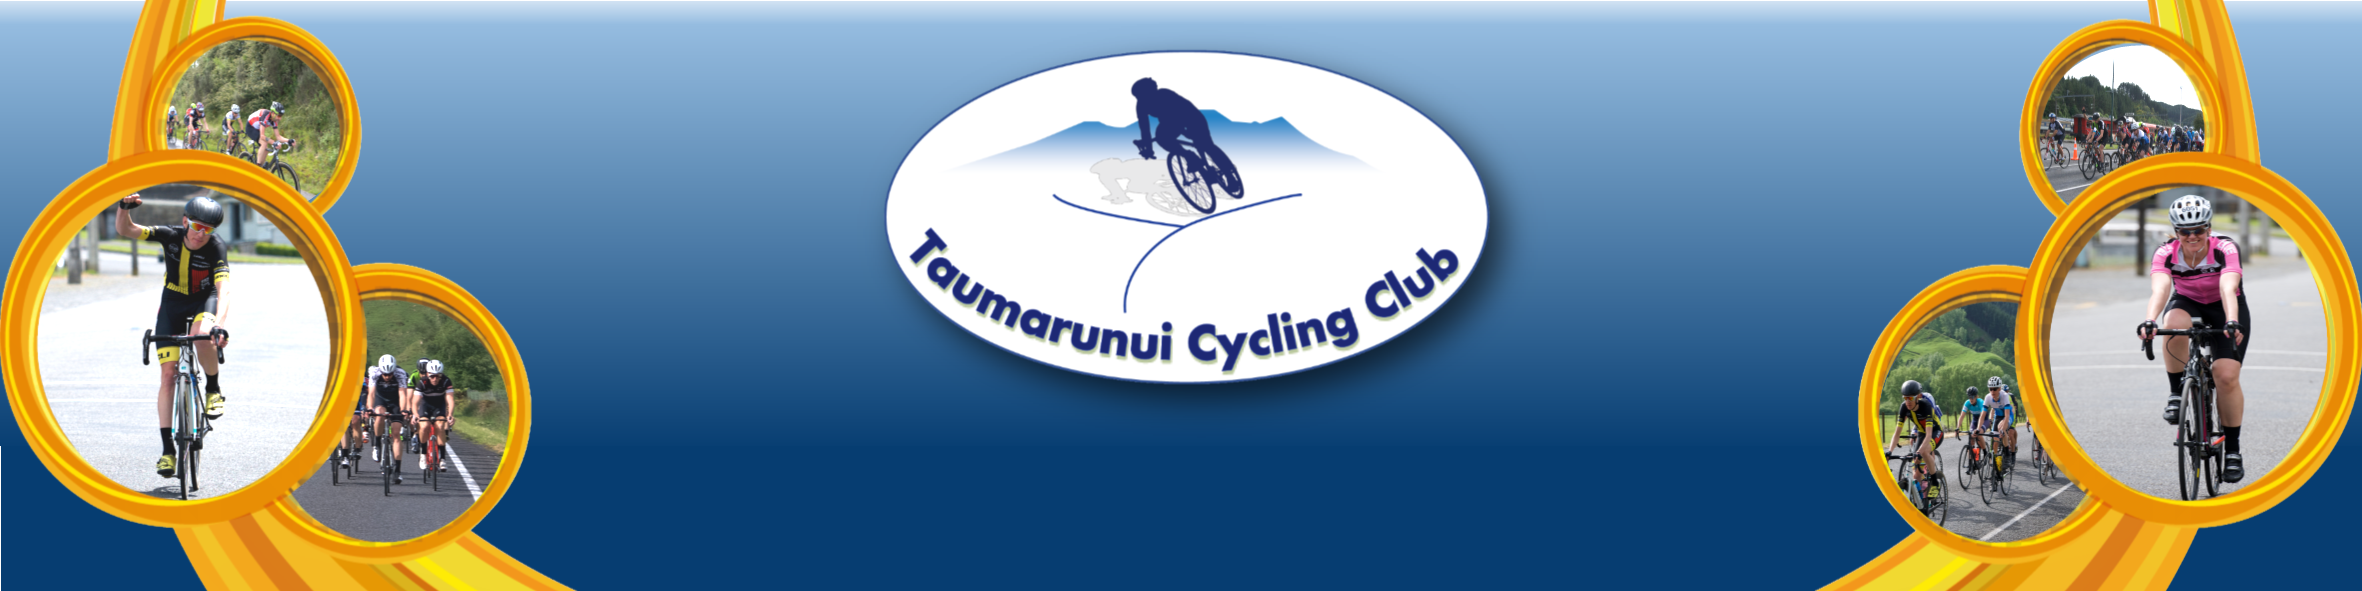 Taumarunui Cycling Club